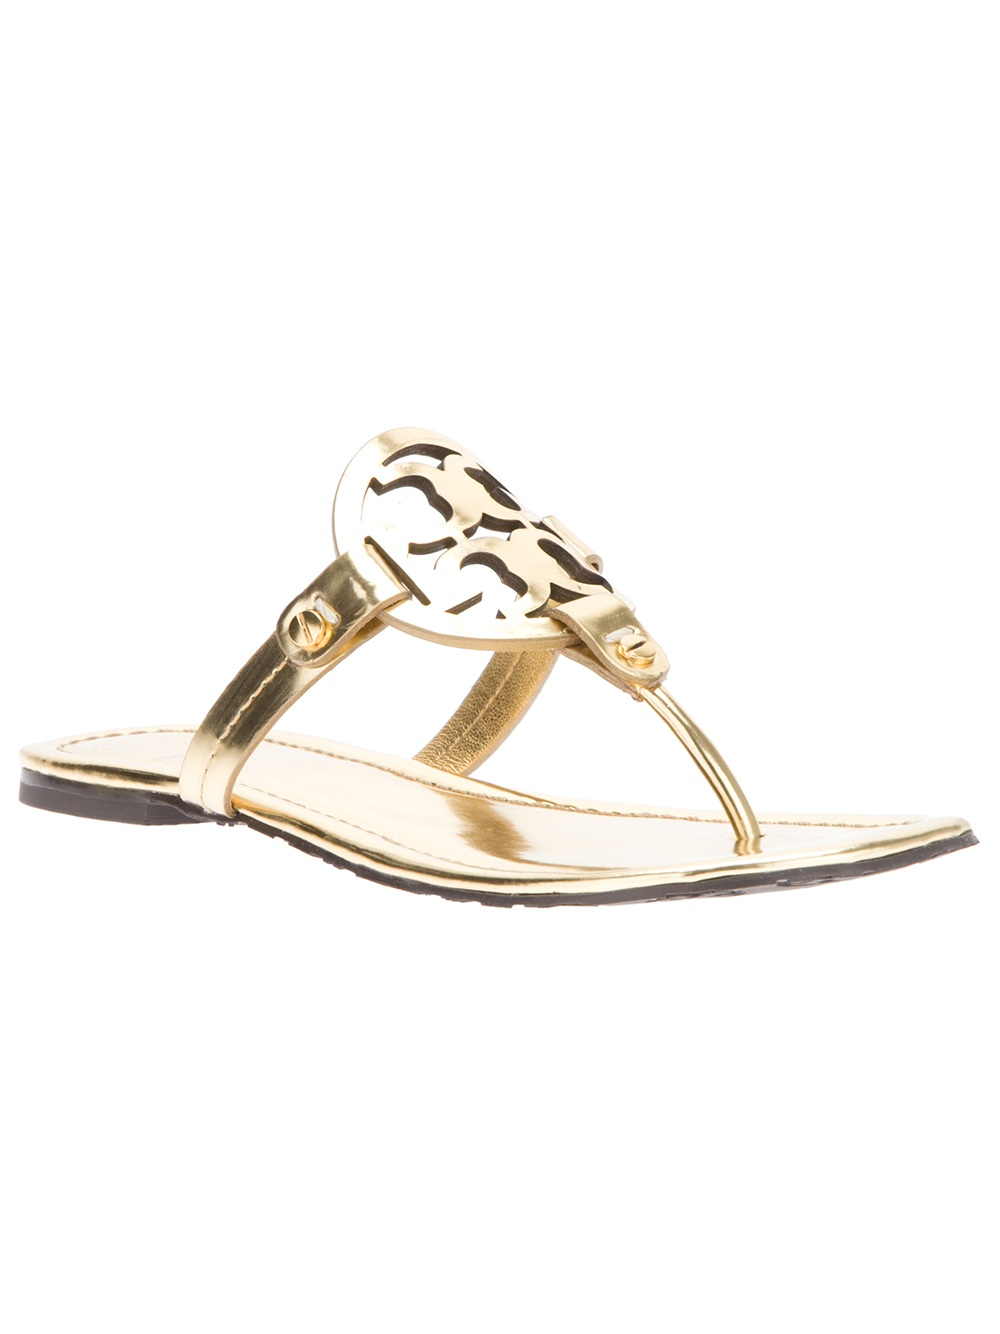 Tory Burch Miller Sandals In Gold Lyst